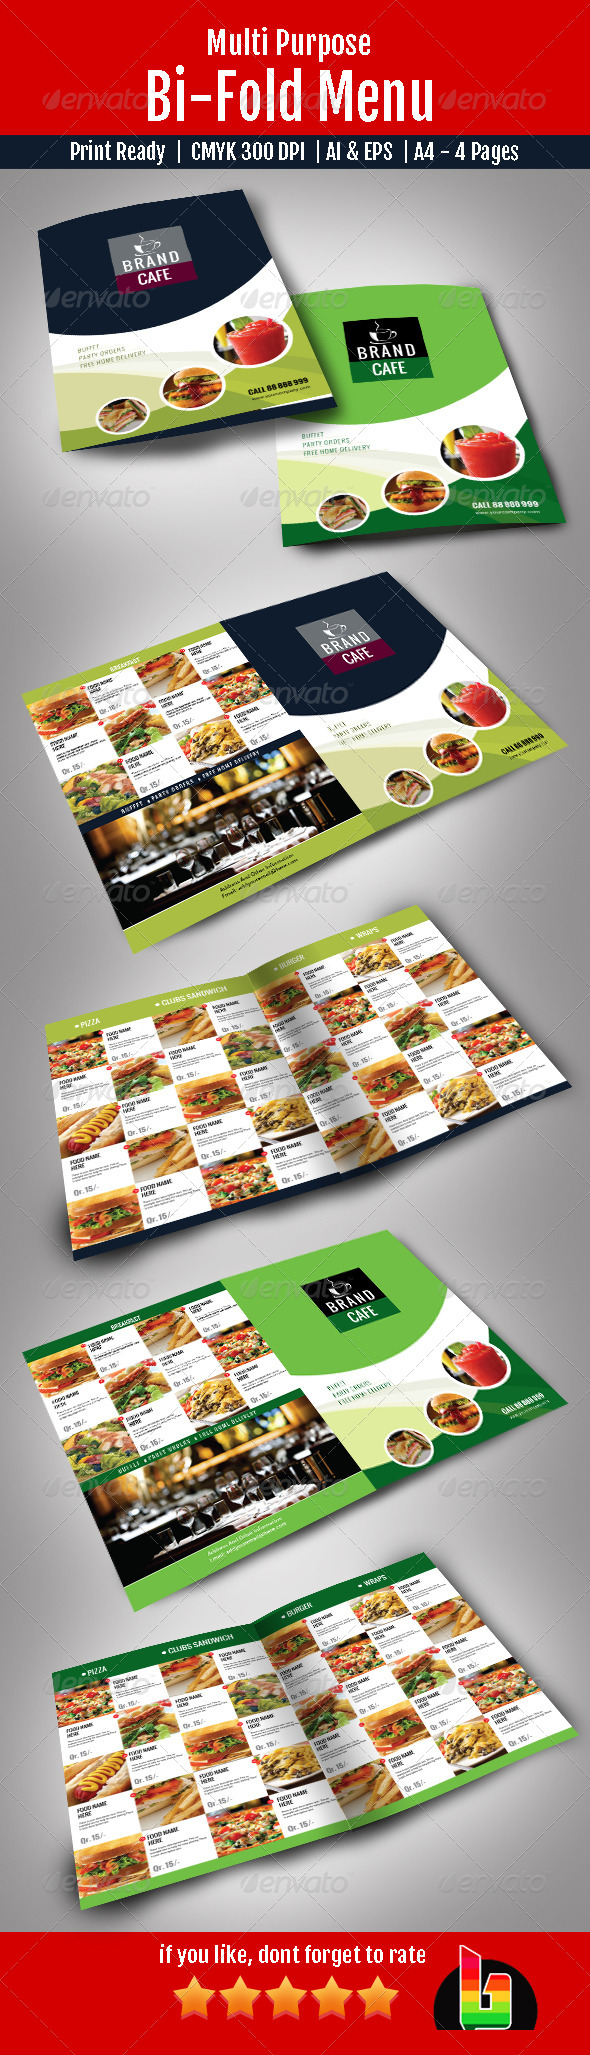 GraphicRiver Bi-Fold Menu 7161111